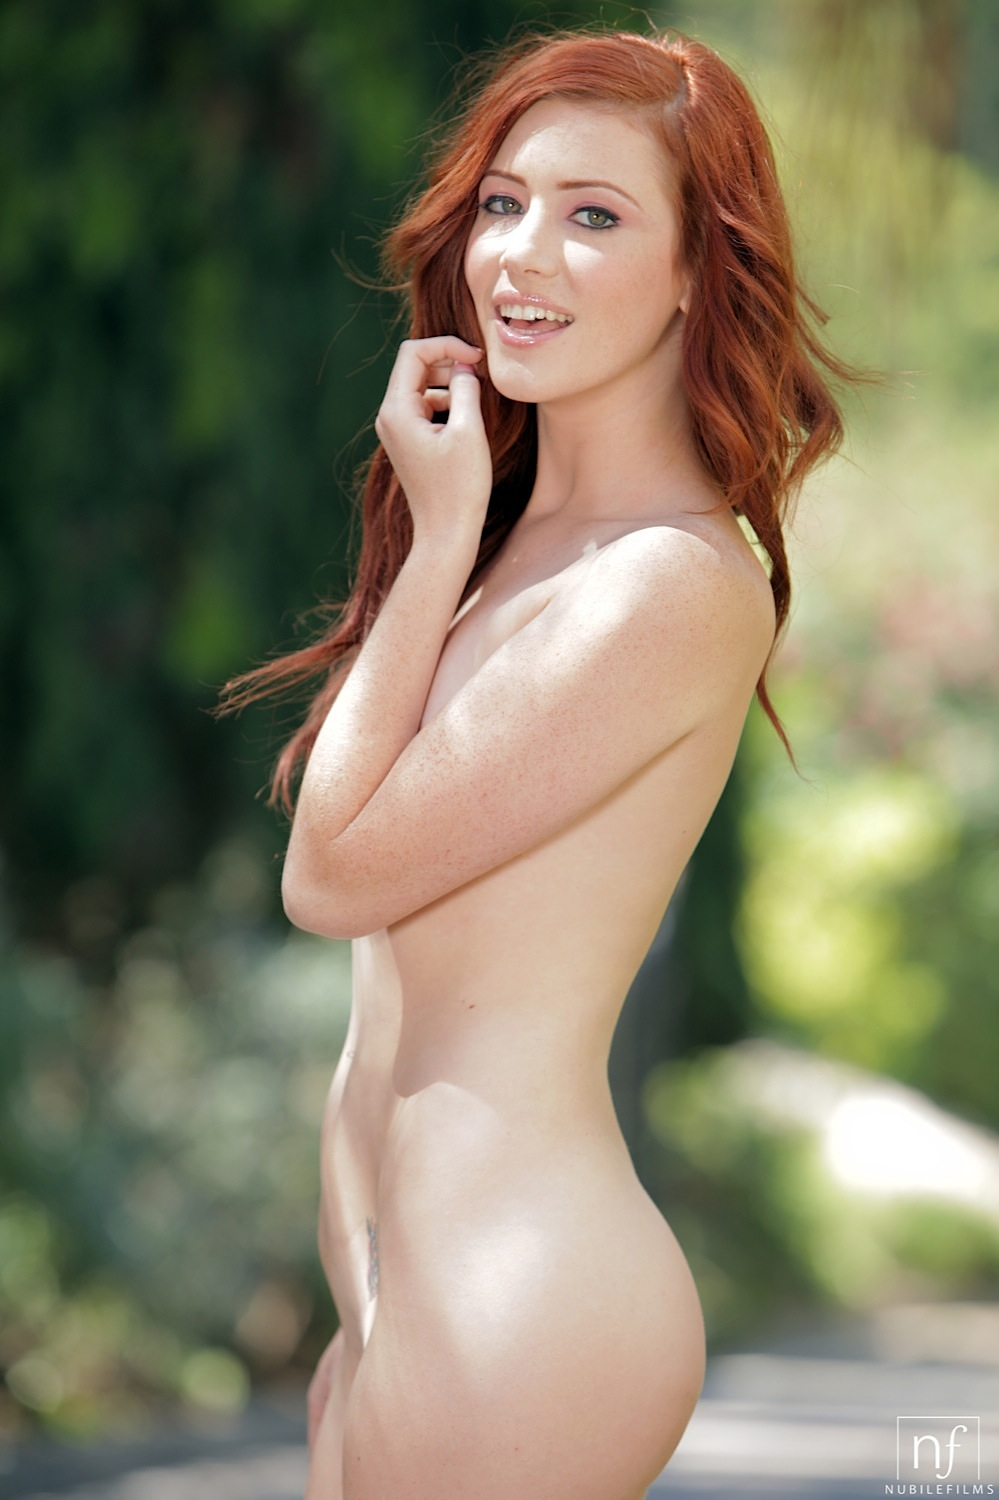 Beautiful naked red head women, extreme porn upload